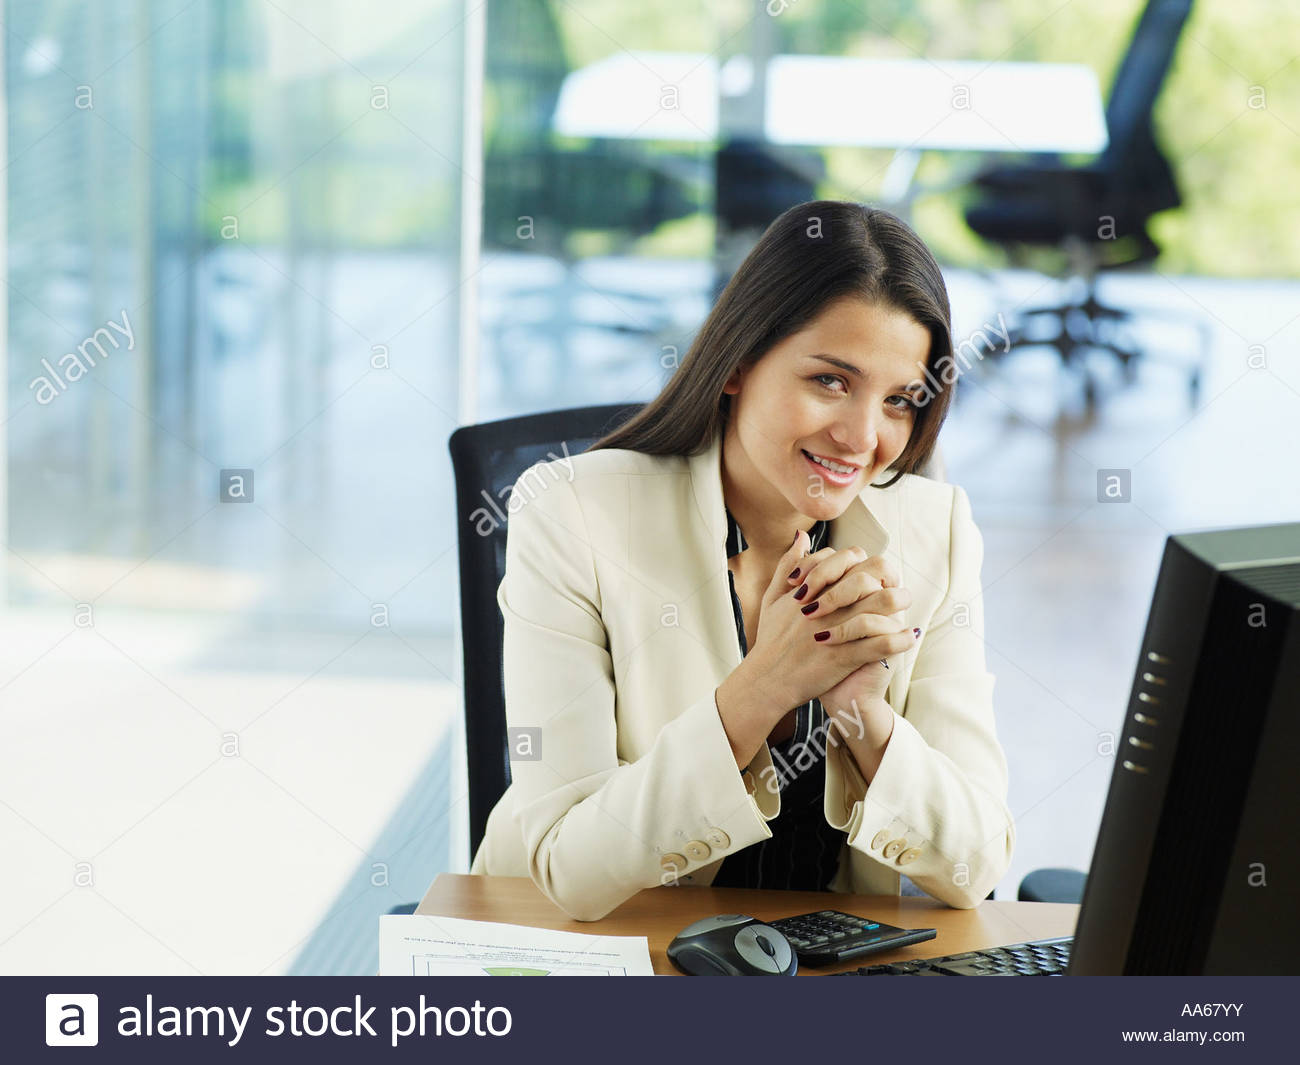 Woman in office working on her personal computer - Stock Image